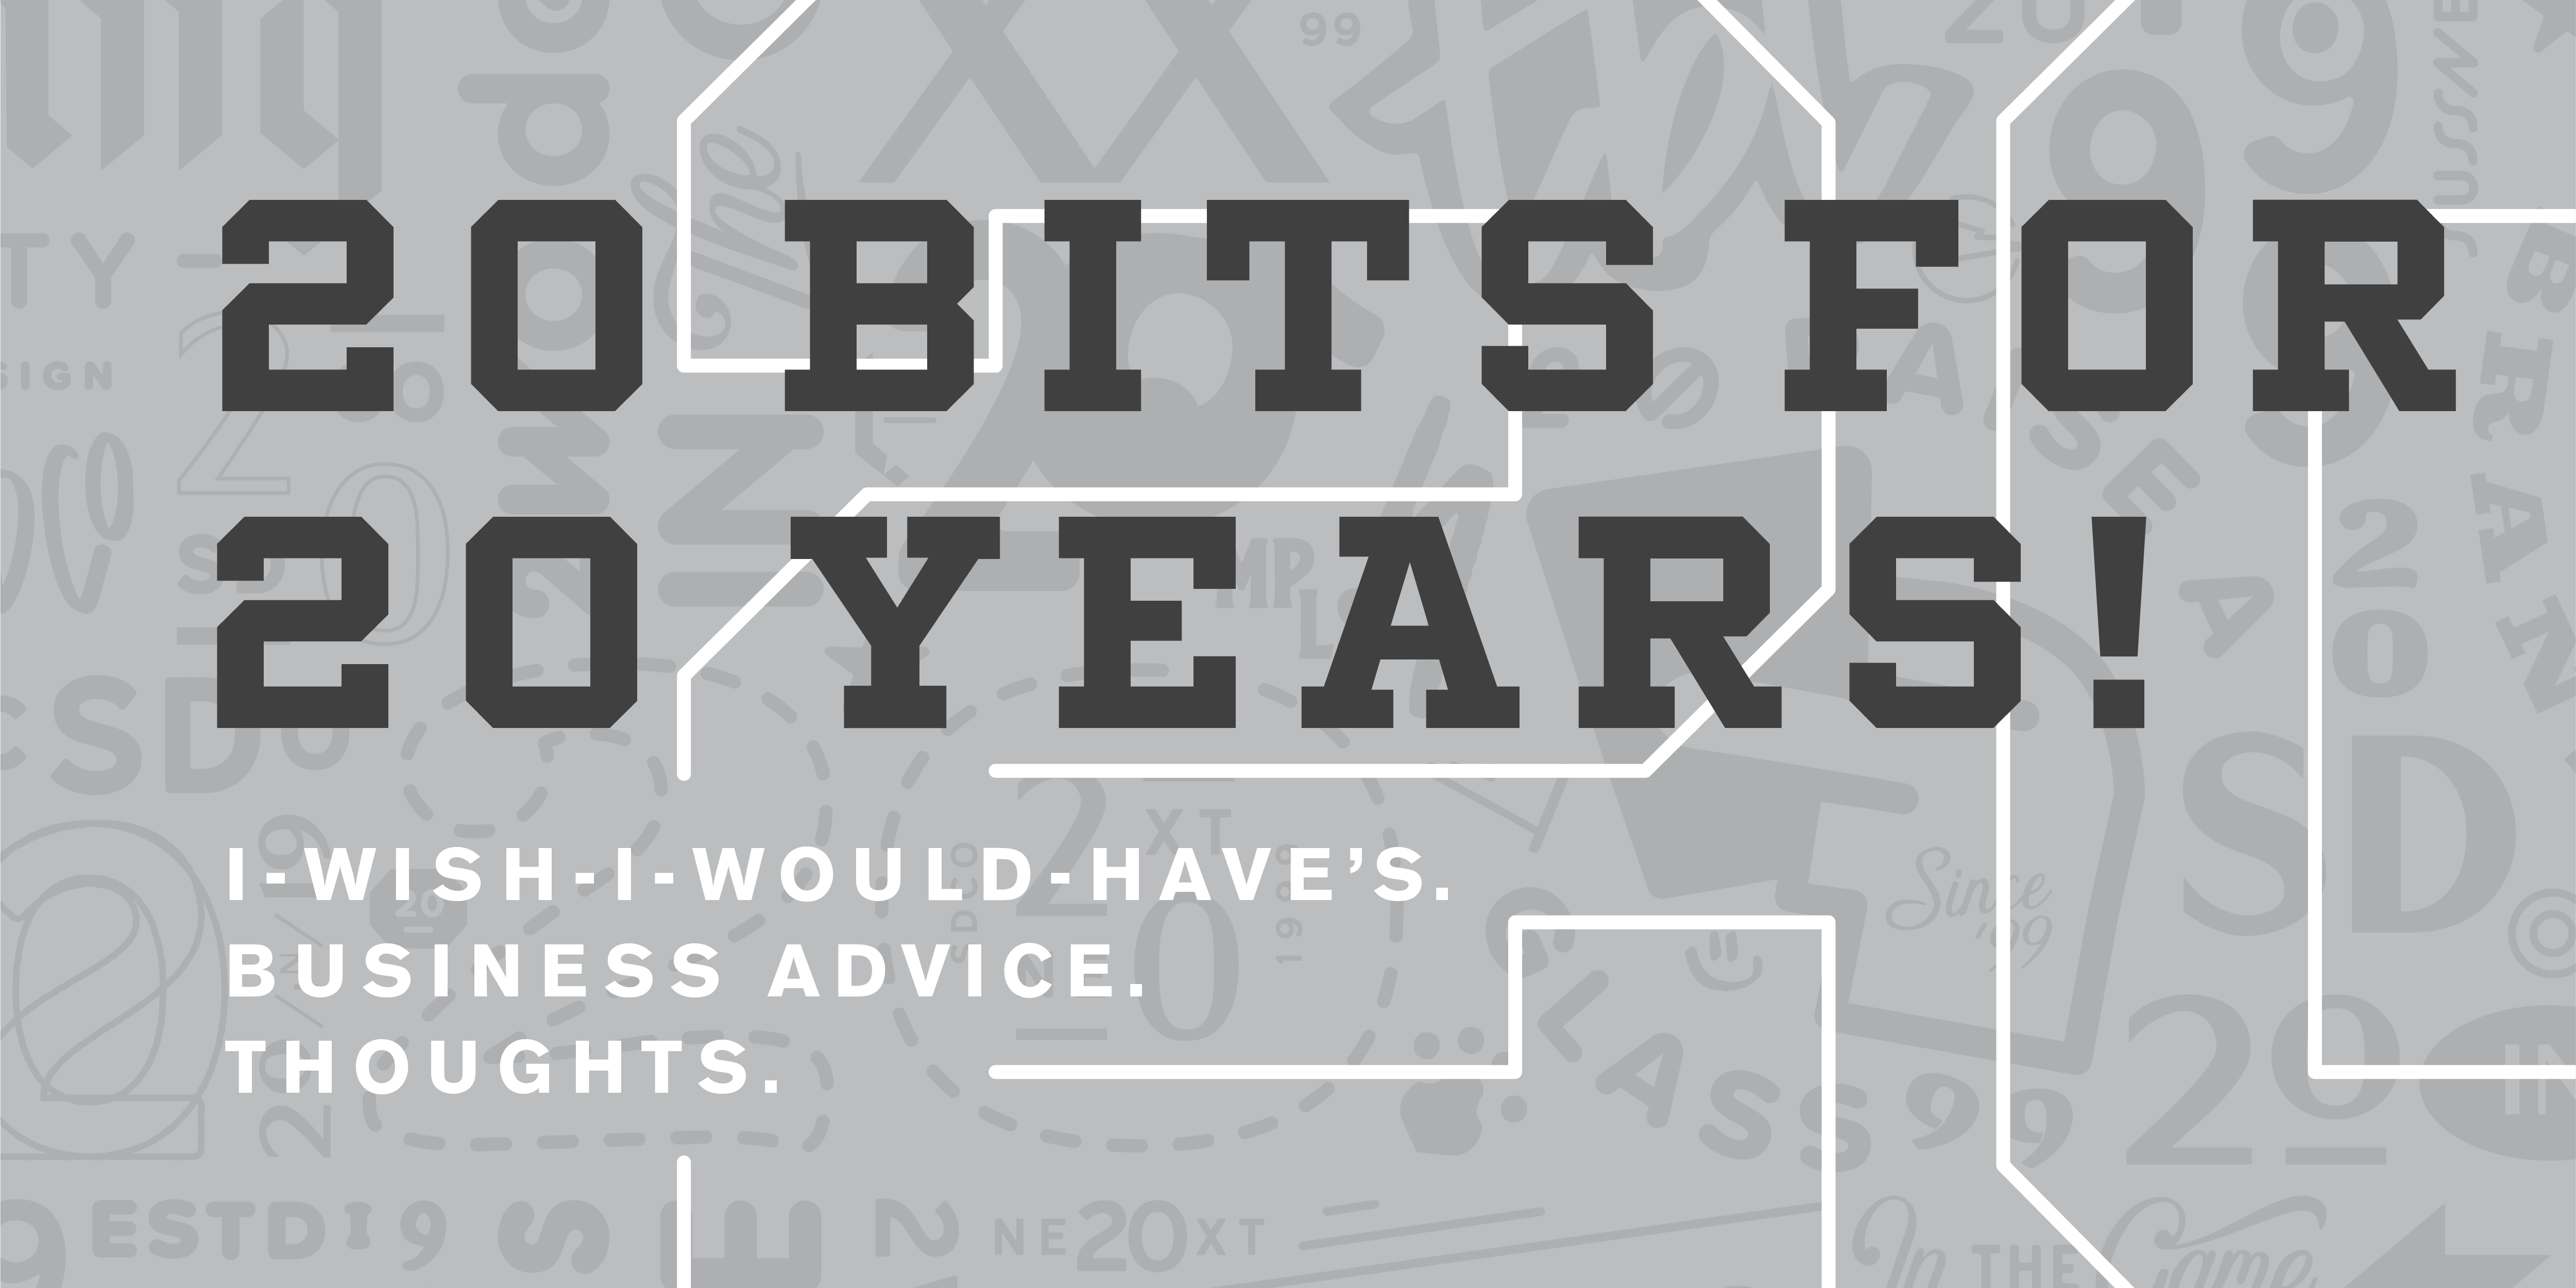 20 Pieces of (Unsolicited) Business Advice For 20 Years